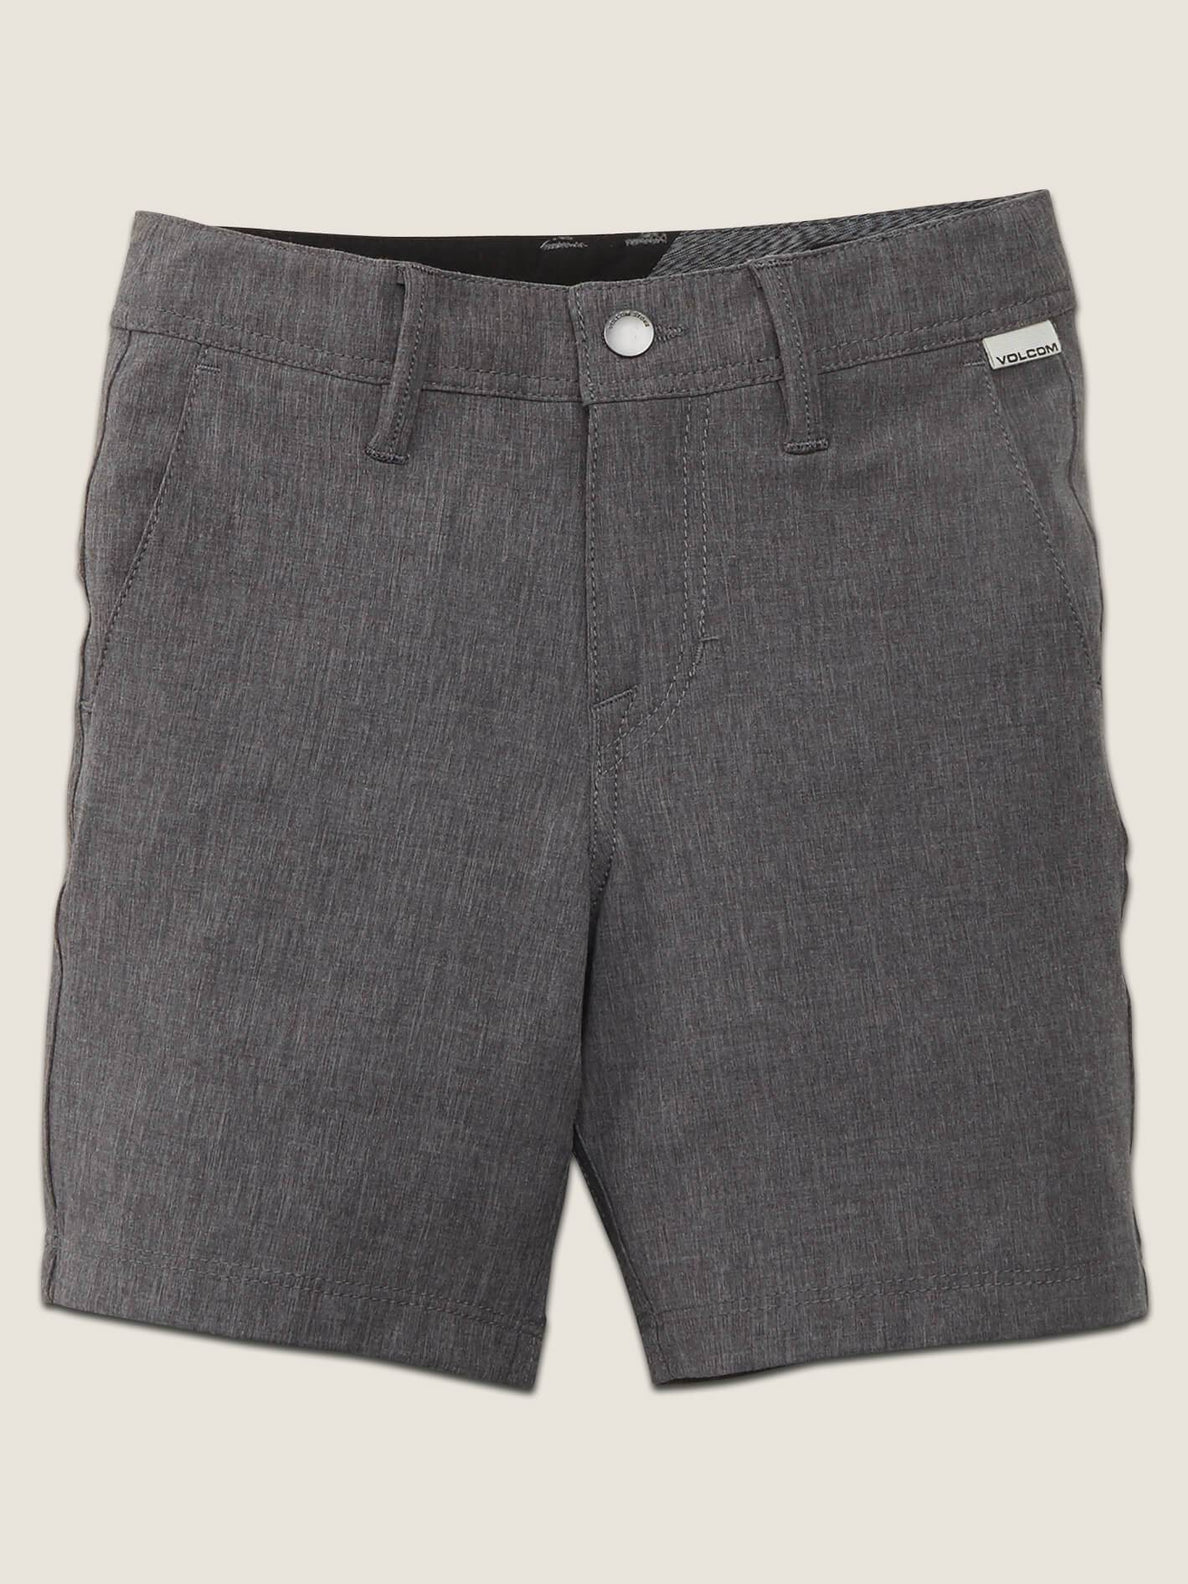 Surf Turf Little Shorts Heather Frickin Static Hybrid Charcoal Boys N' T3JulKcF1